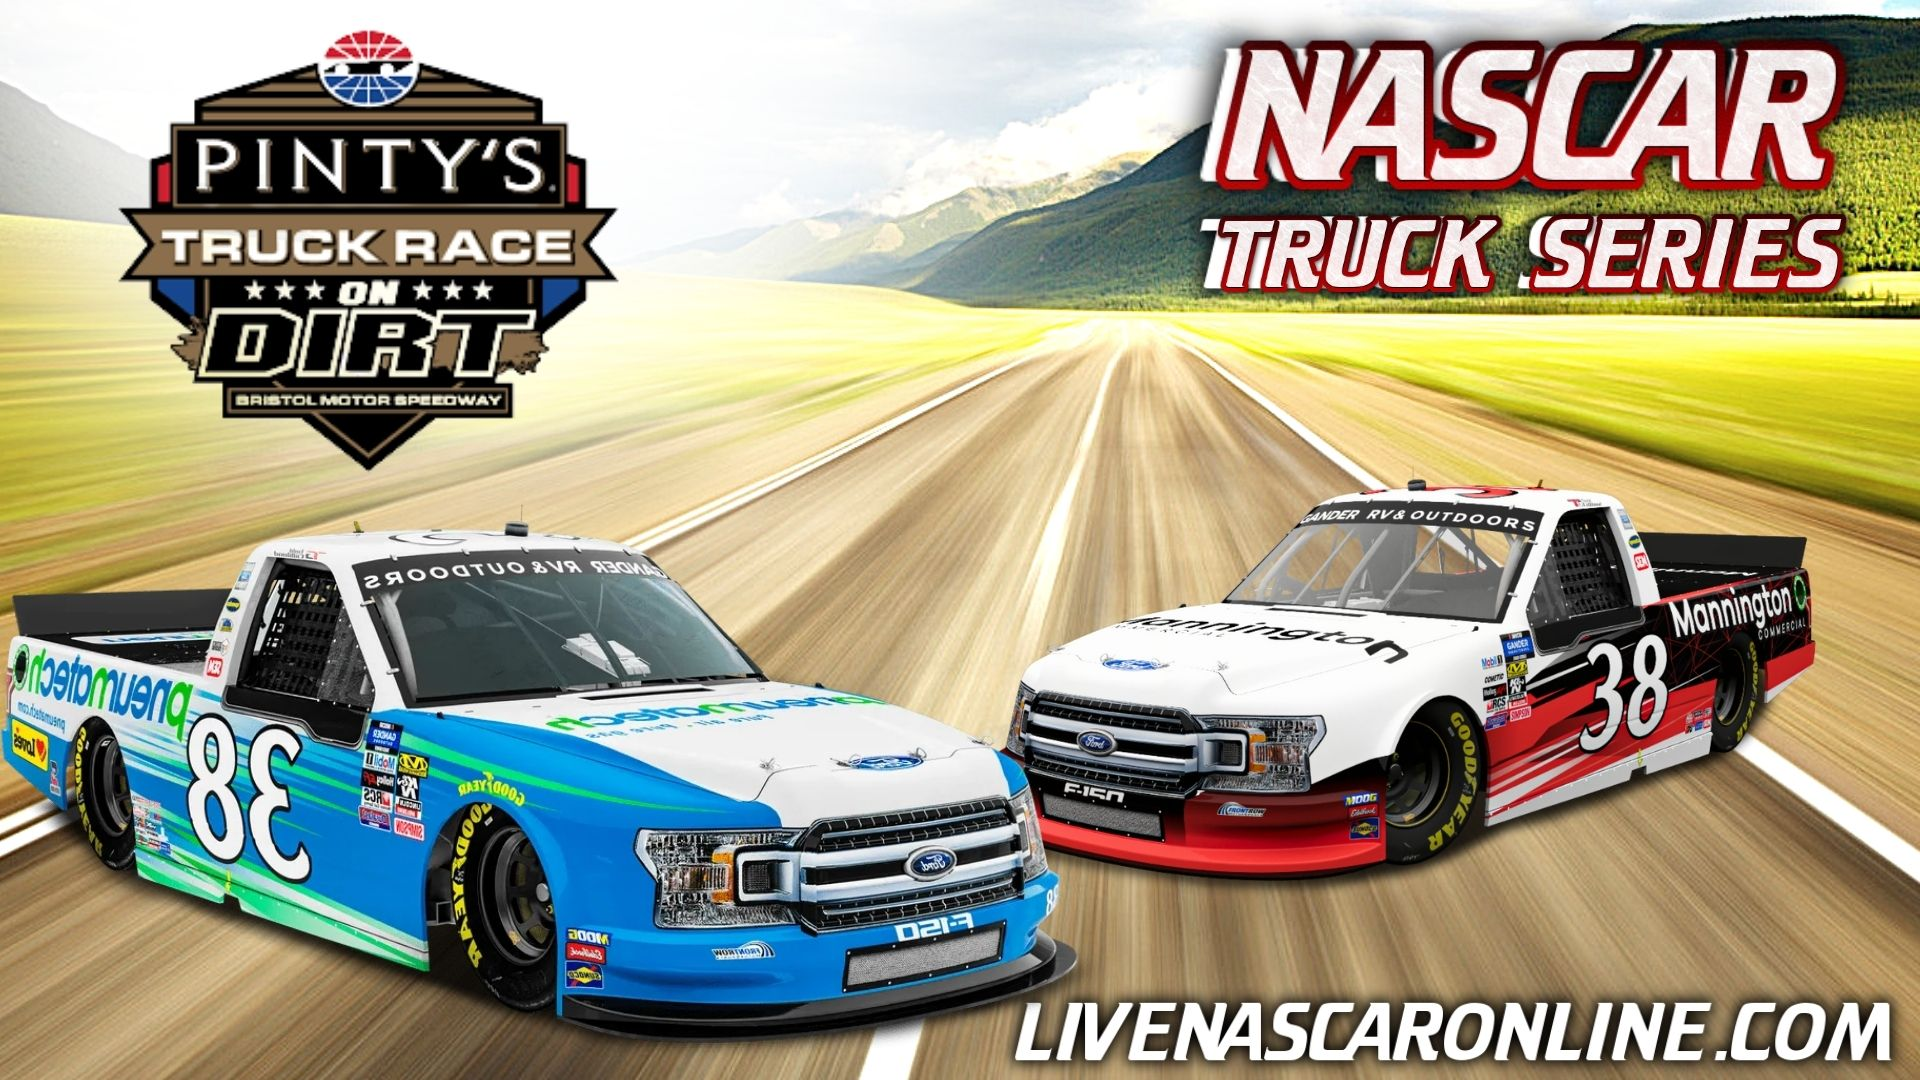 Pintys Race On Dirt Highlights 2021 Nascar Truck Series